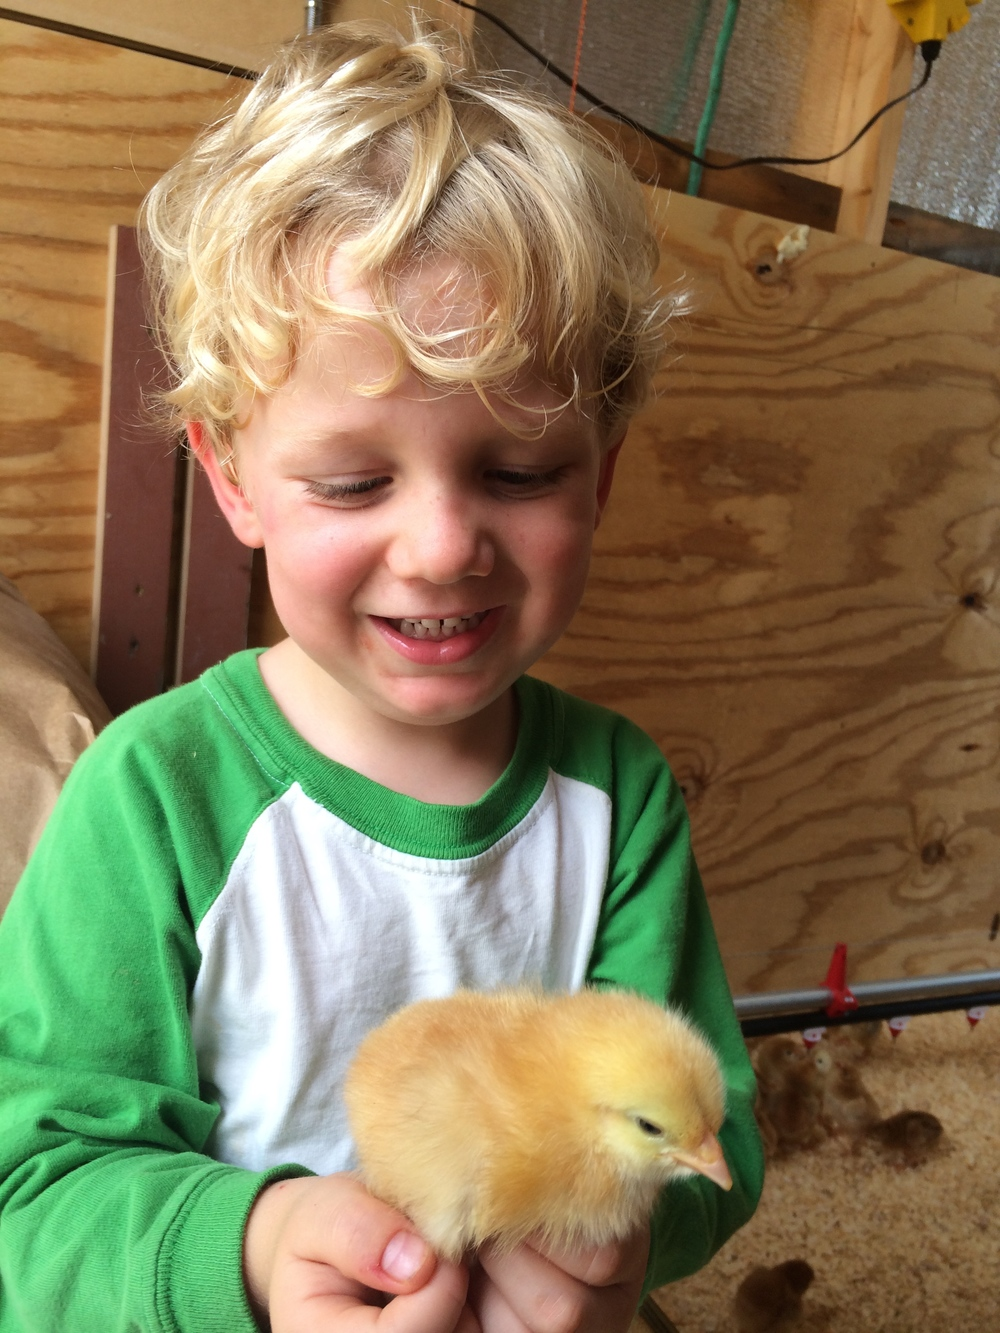 Our son helps greet the chicks.